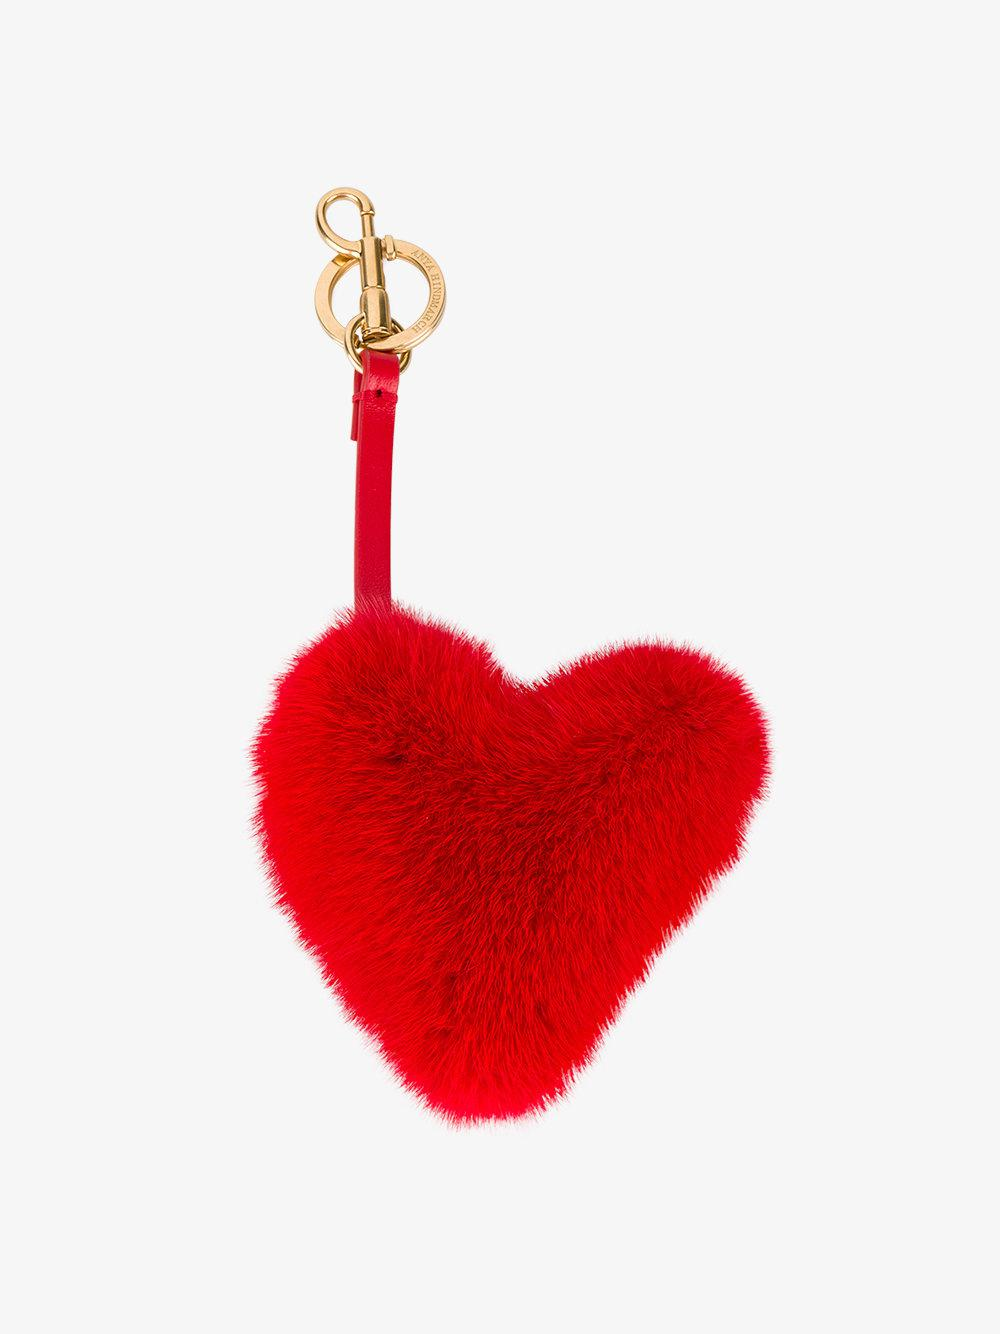 Anya Hindmarch Heart keyring - Red PlOuQ